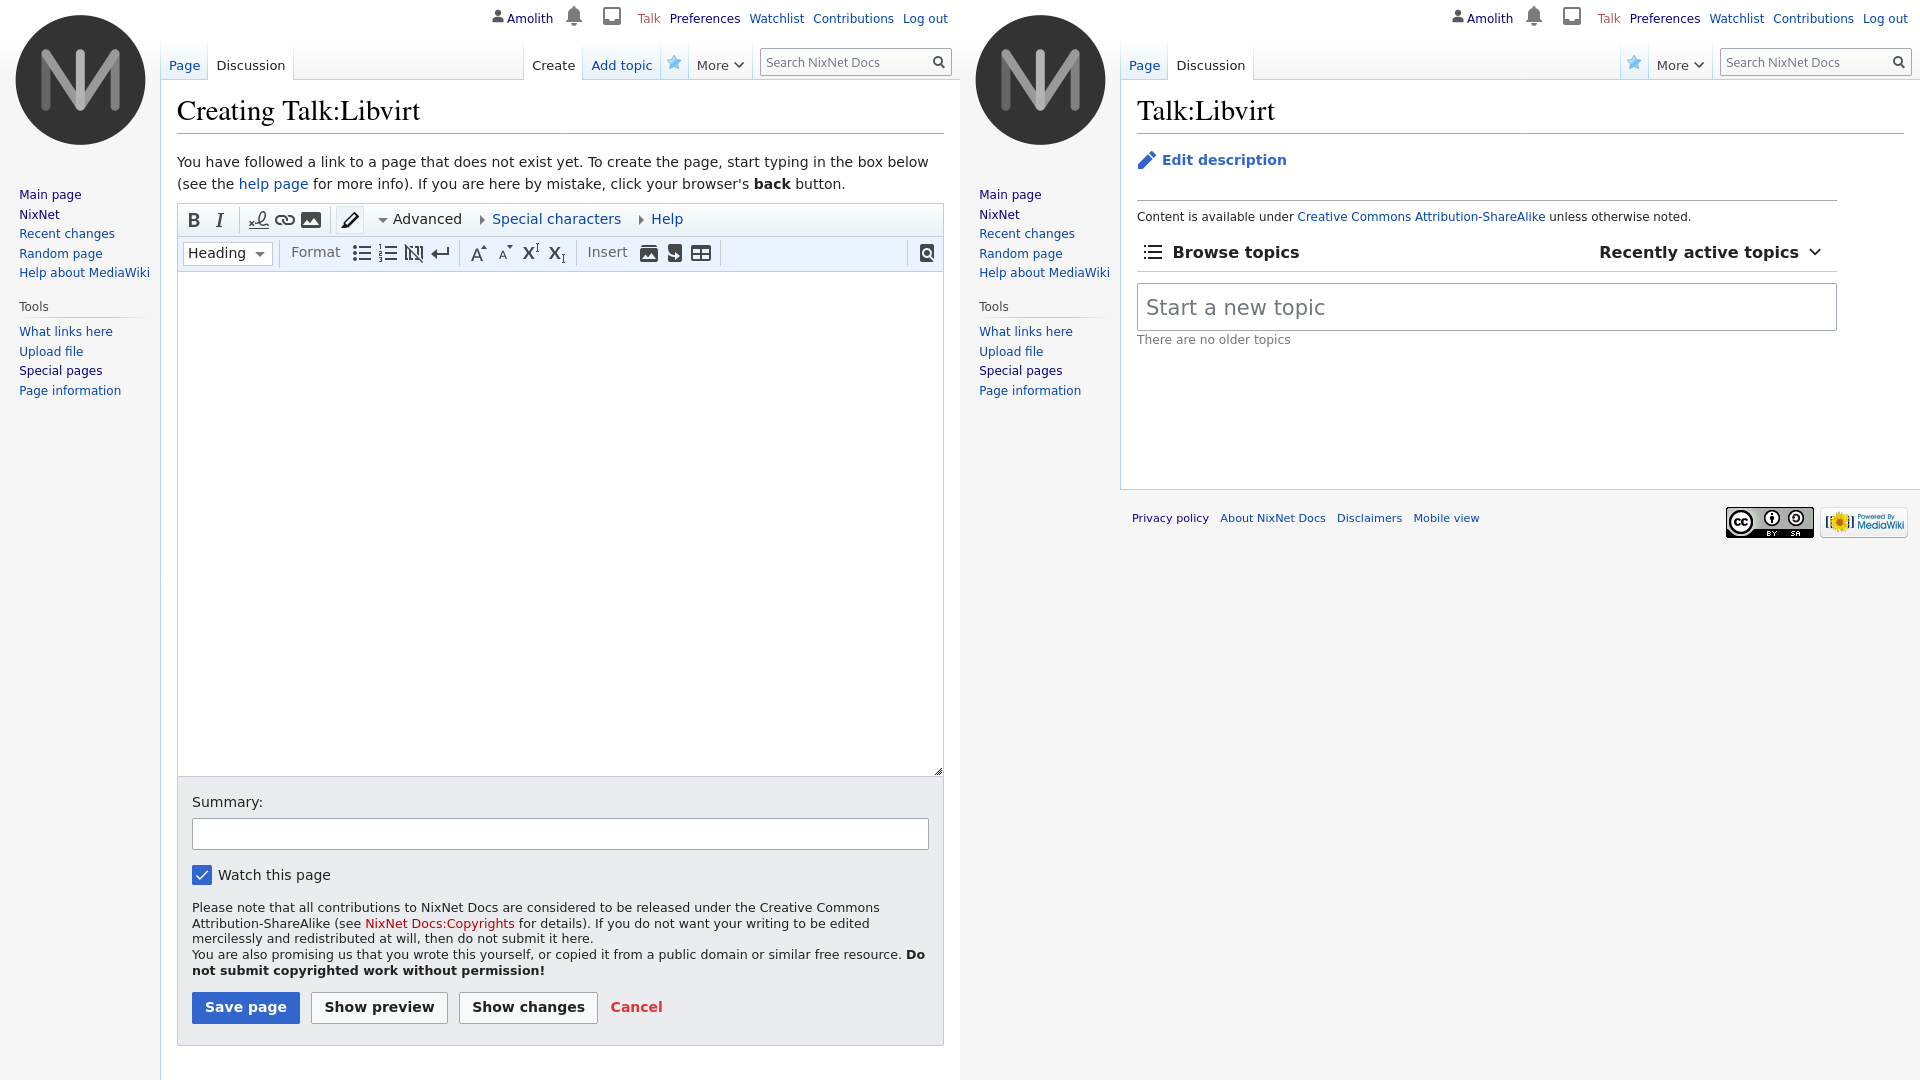 side-by-side screenshot of my wiki before and after enabling the extension. the left really is just the default content editor. it's like giving someone a text editor on a server and asking them to have a conversation with someone else by editing the same file and saving it to see replies. the right side is with the extension enabled and gives buttons to browse by topic and a field to create a new topic. it's very similar to github's issue tracker, for example, but without the ability to sort by tags